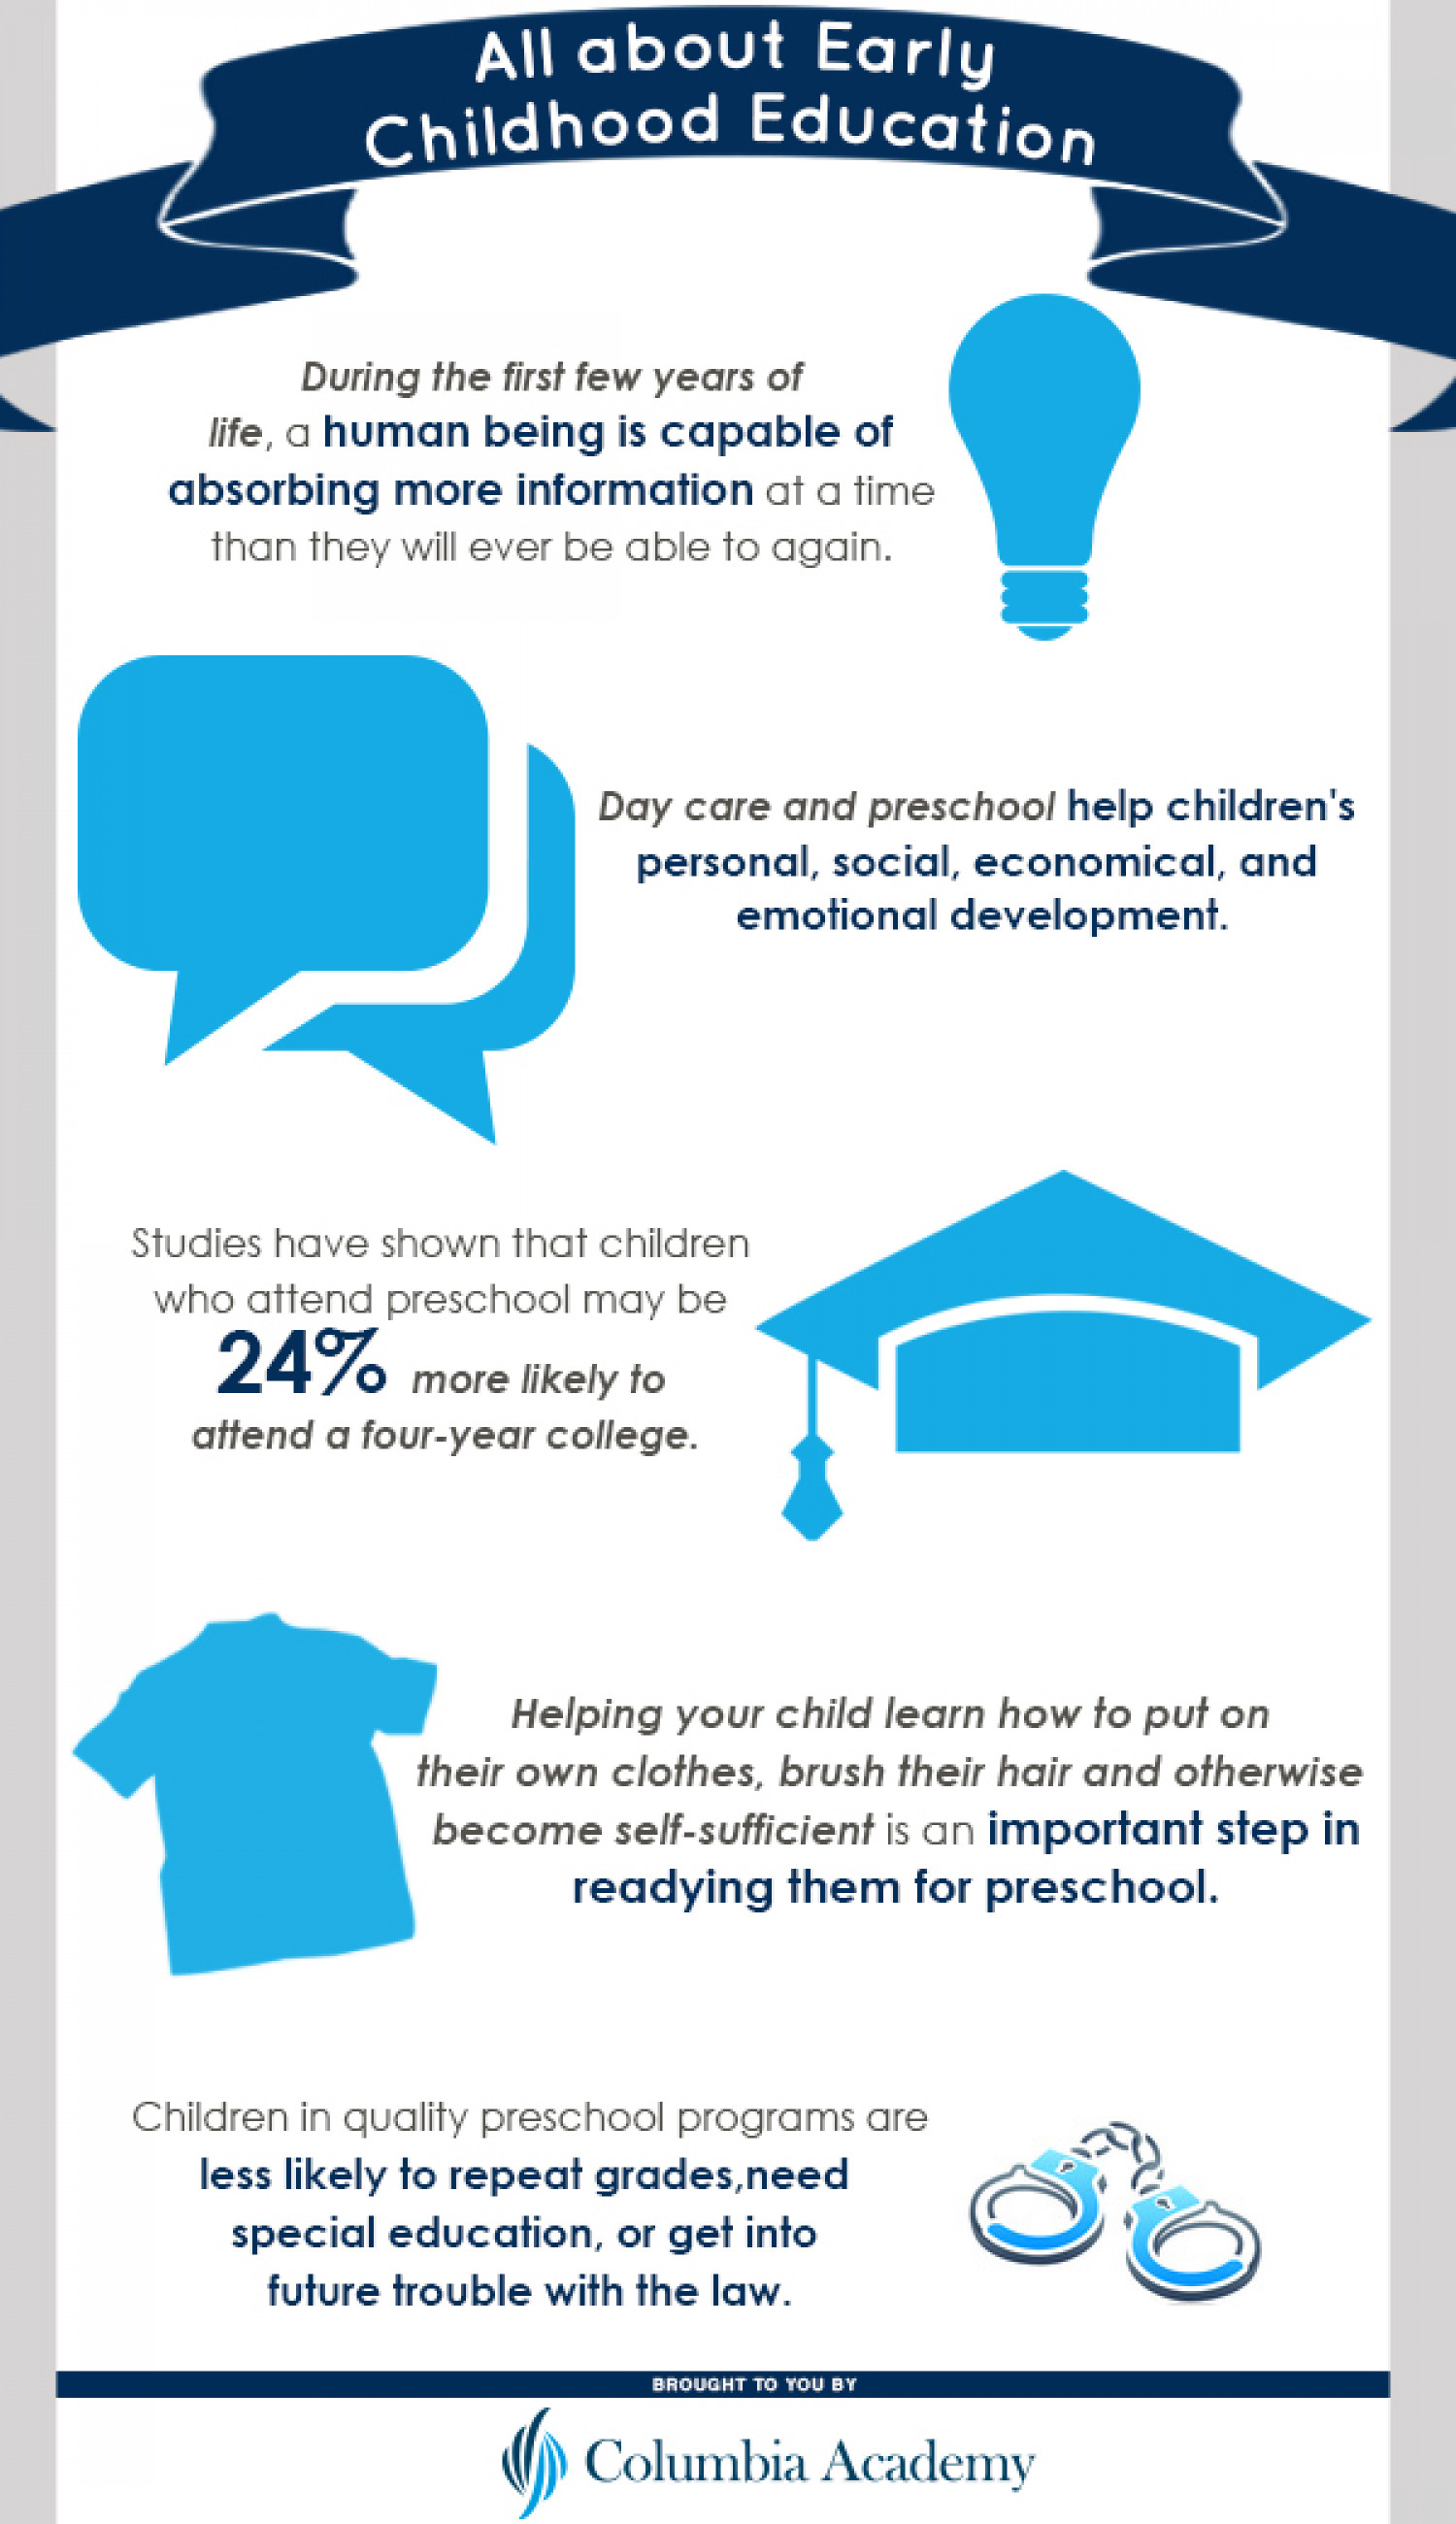 All About Early Childhood Education Infographic